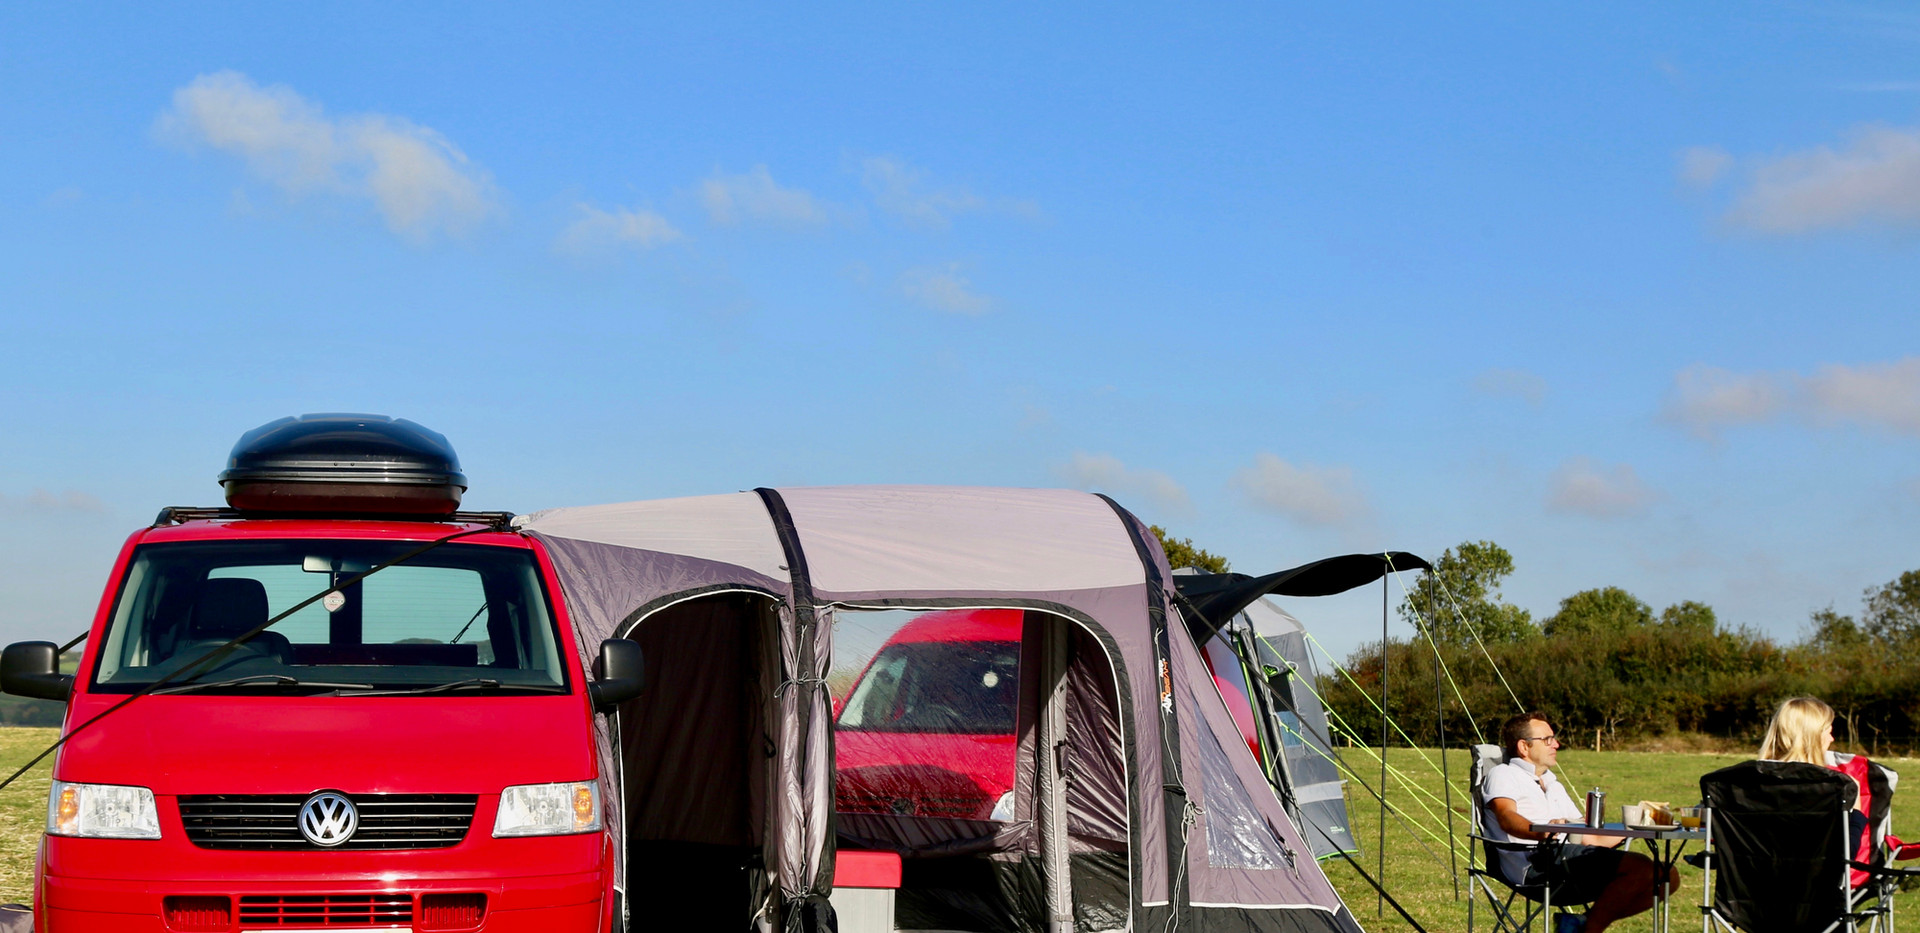 RED1 AWNING SOLO